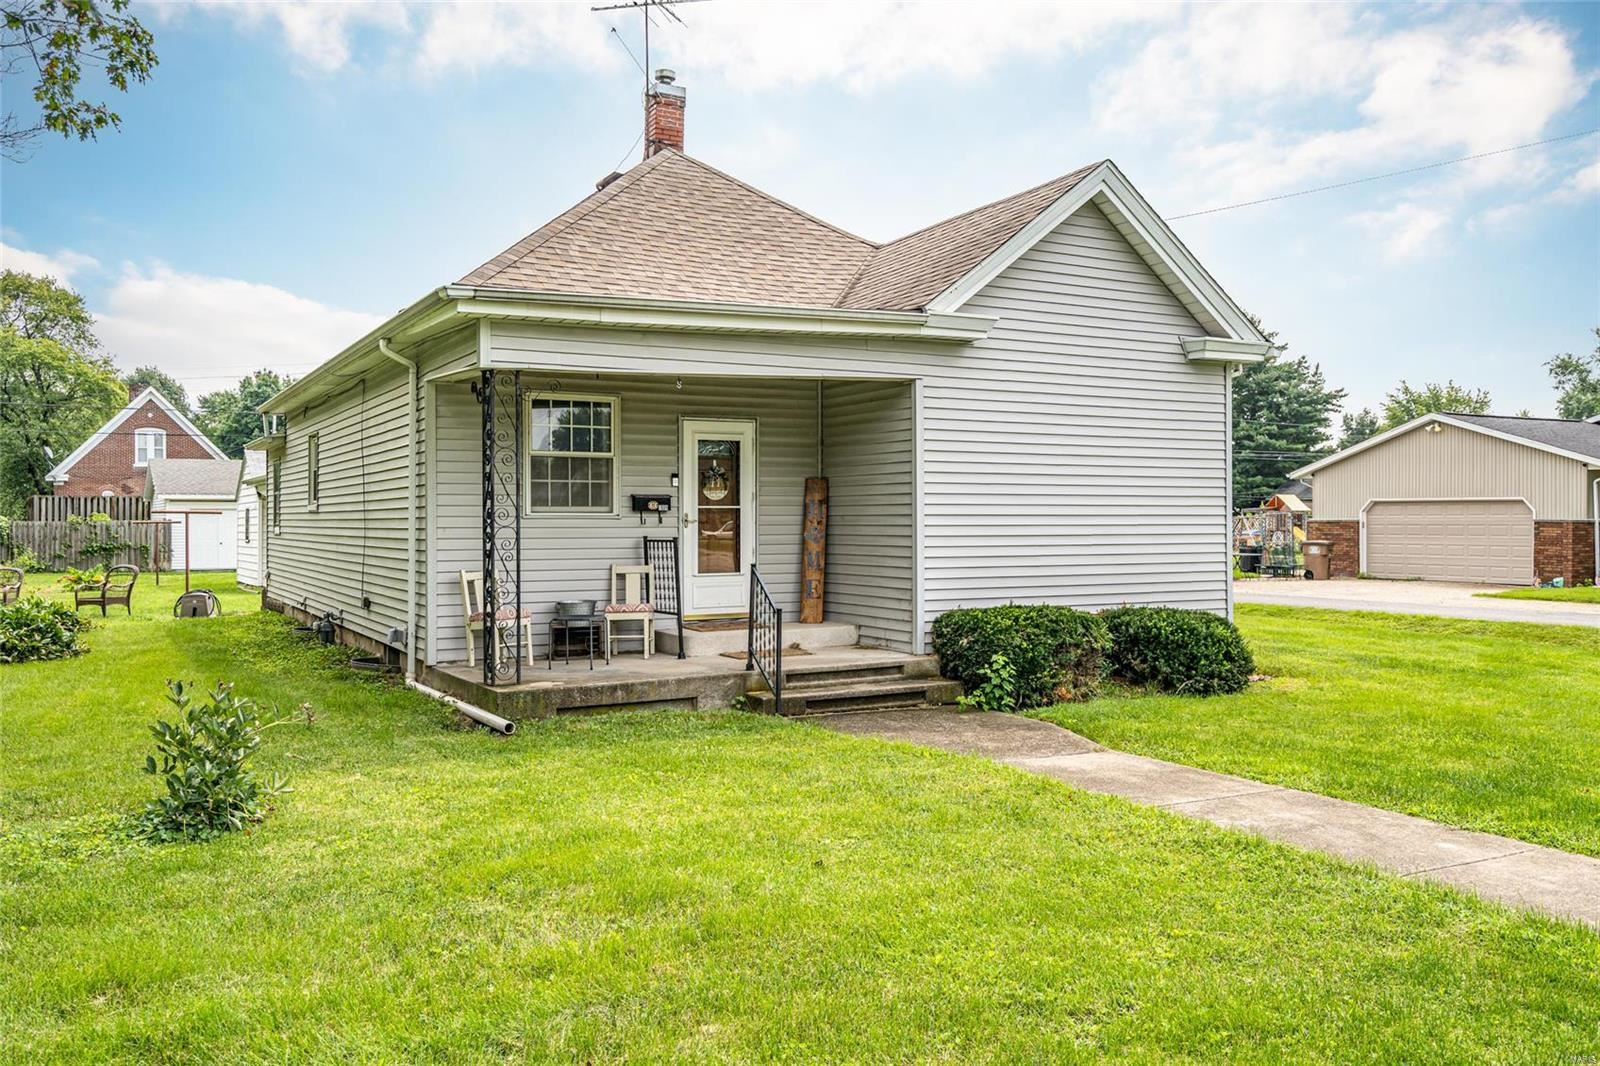 709 S Macoupin, Gillespie, IL 62033 - MLS#: 21057289